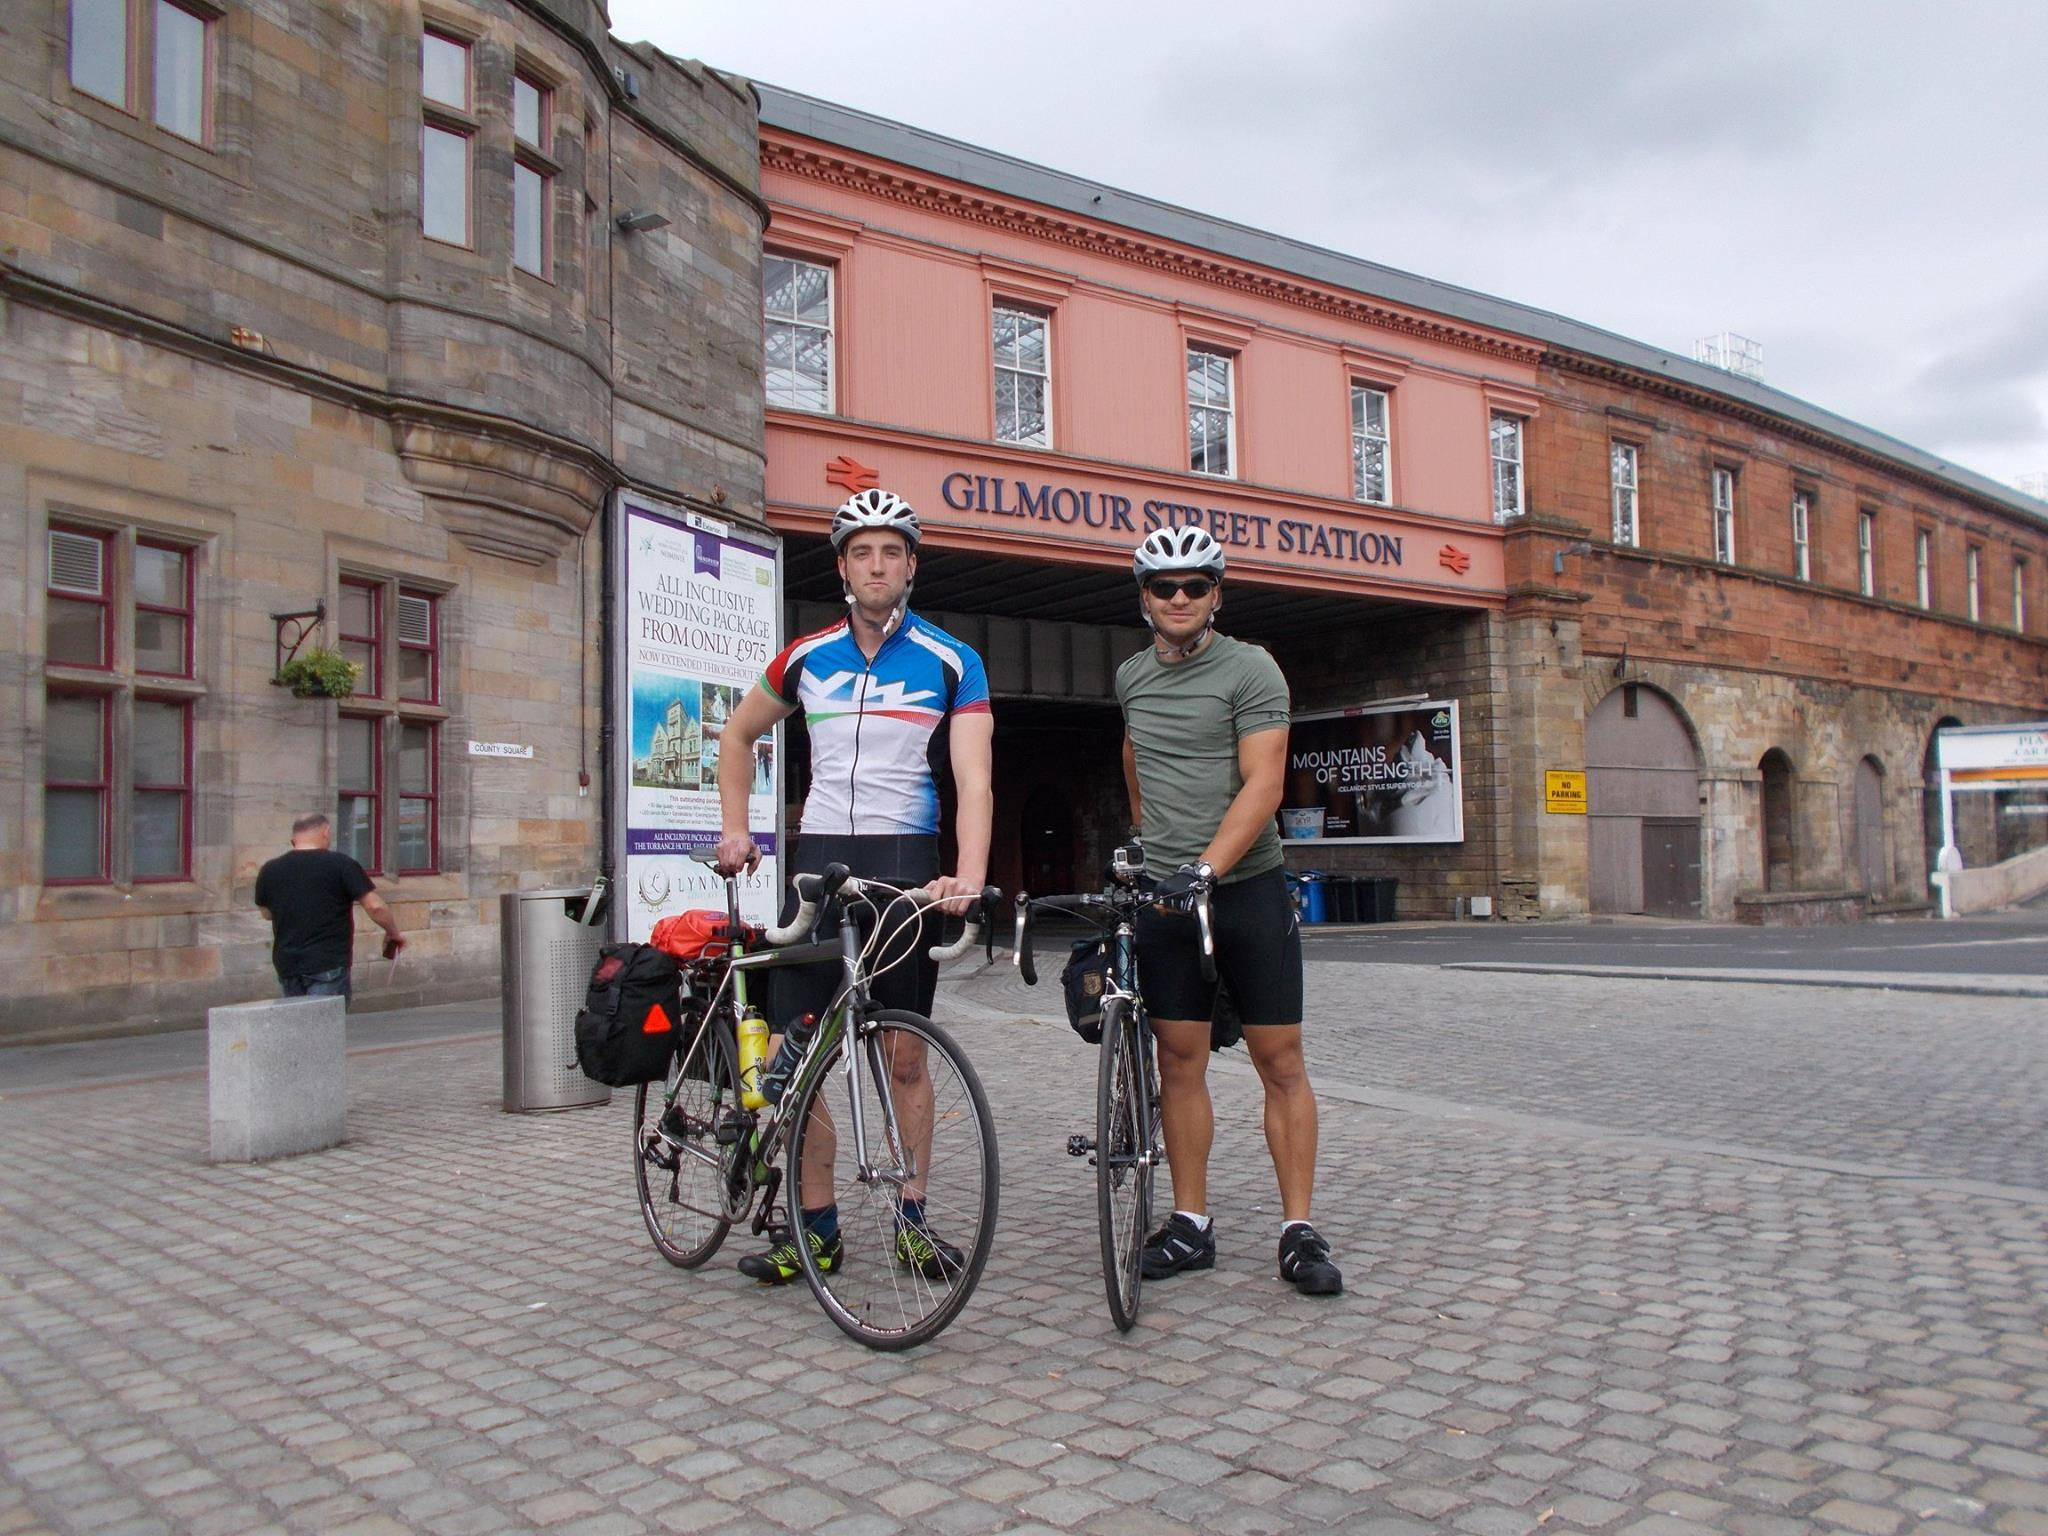 tom Robertson and John Grose began their journey in Paisley earlier this week